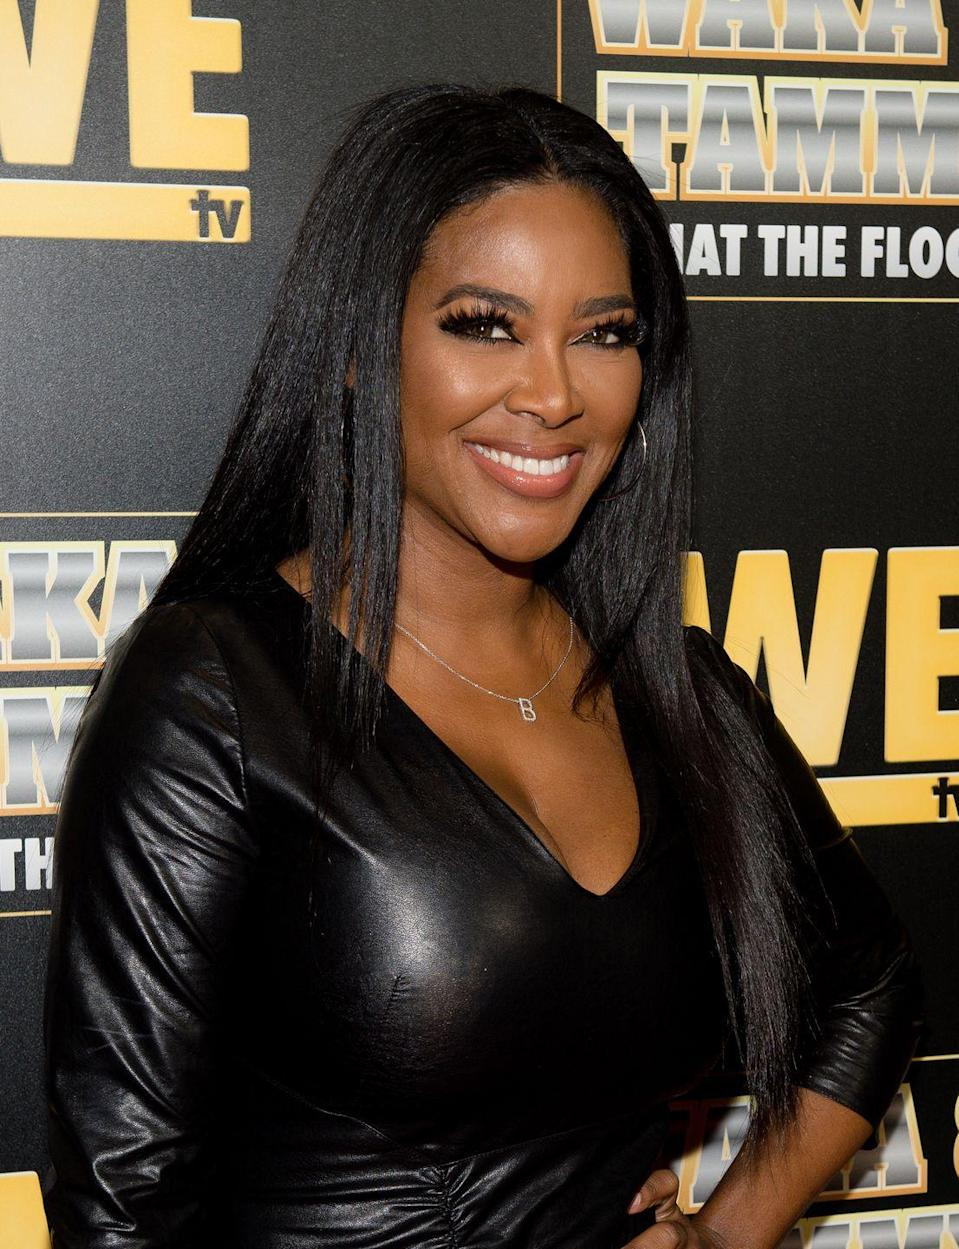 <p>Kenya has worked as an actress and model since her position of Miss USA, but most notably has starred on Bravo's <em>The Real Housewives of Atlanta </em>since 2012. In 2015, she was a contestant on <em>The Apprentice.</em></p>